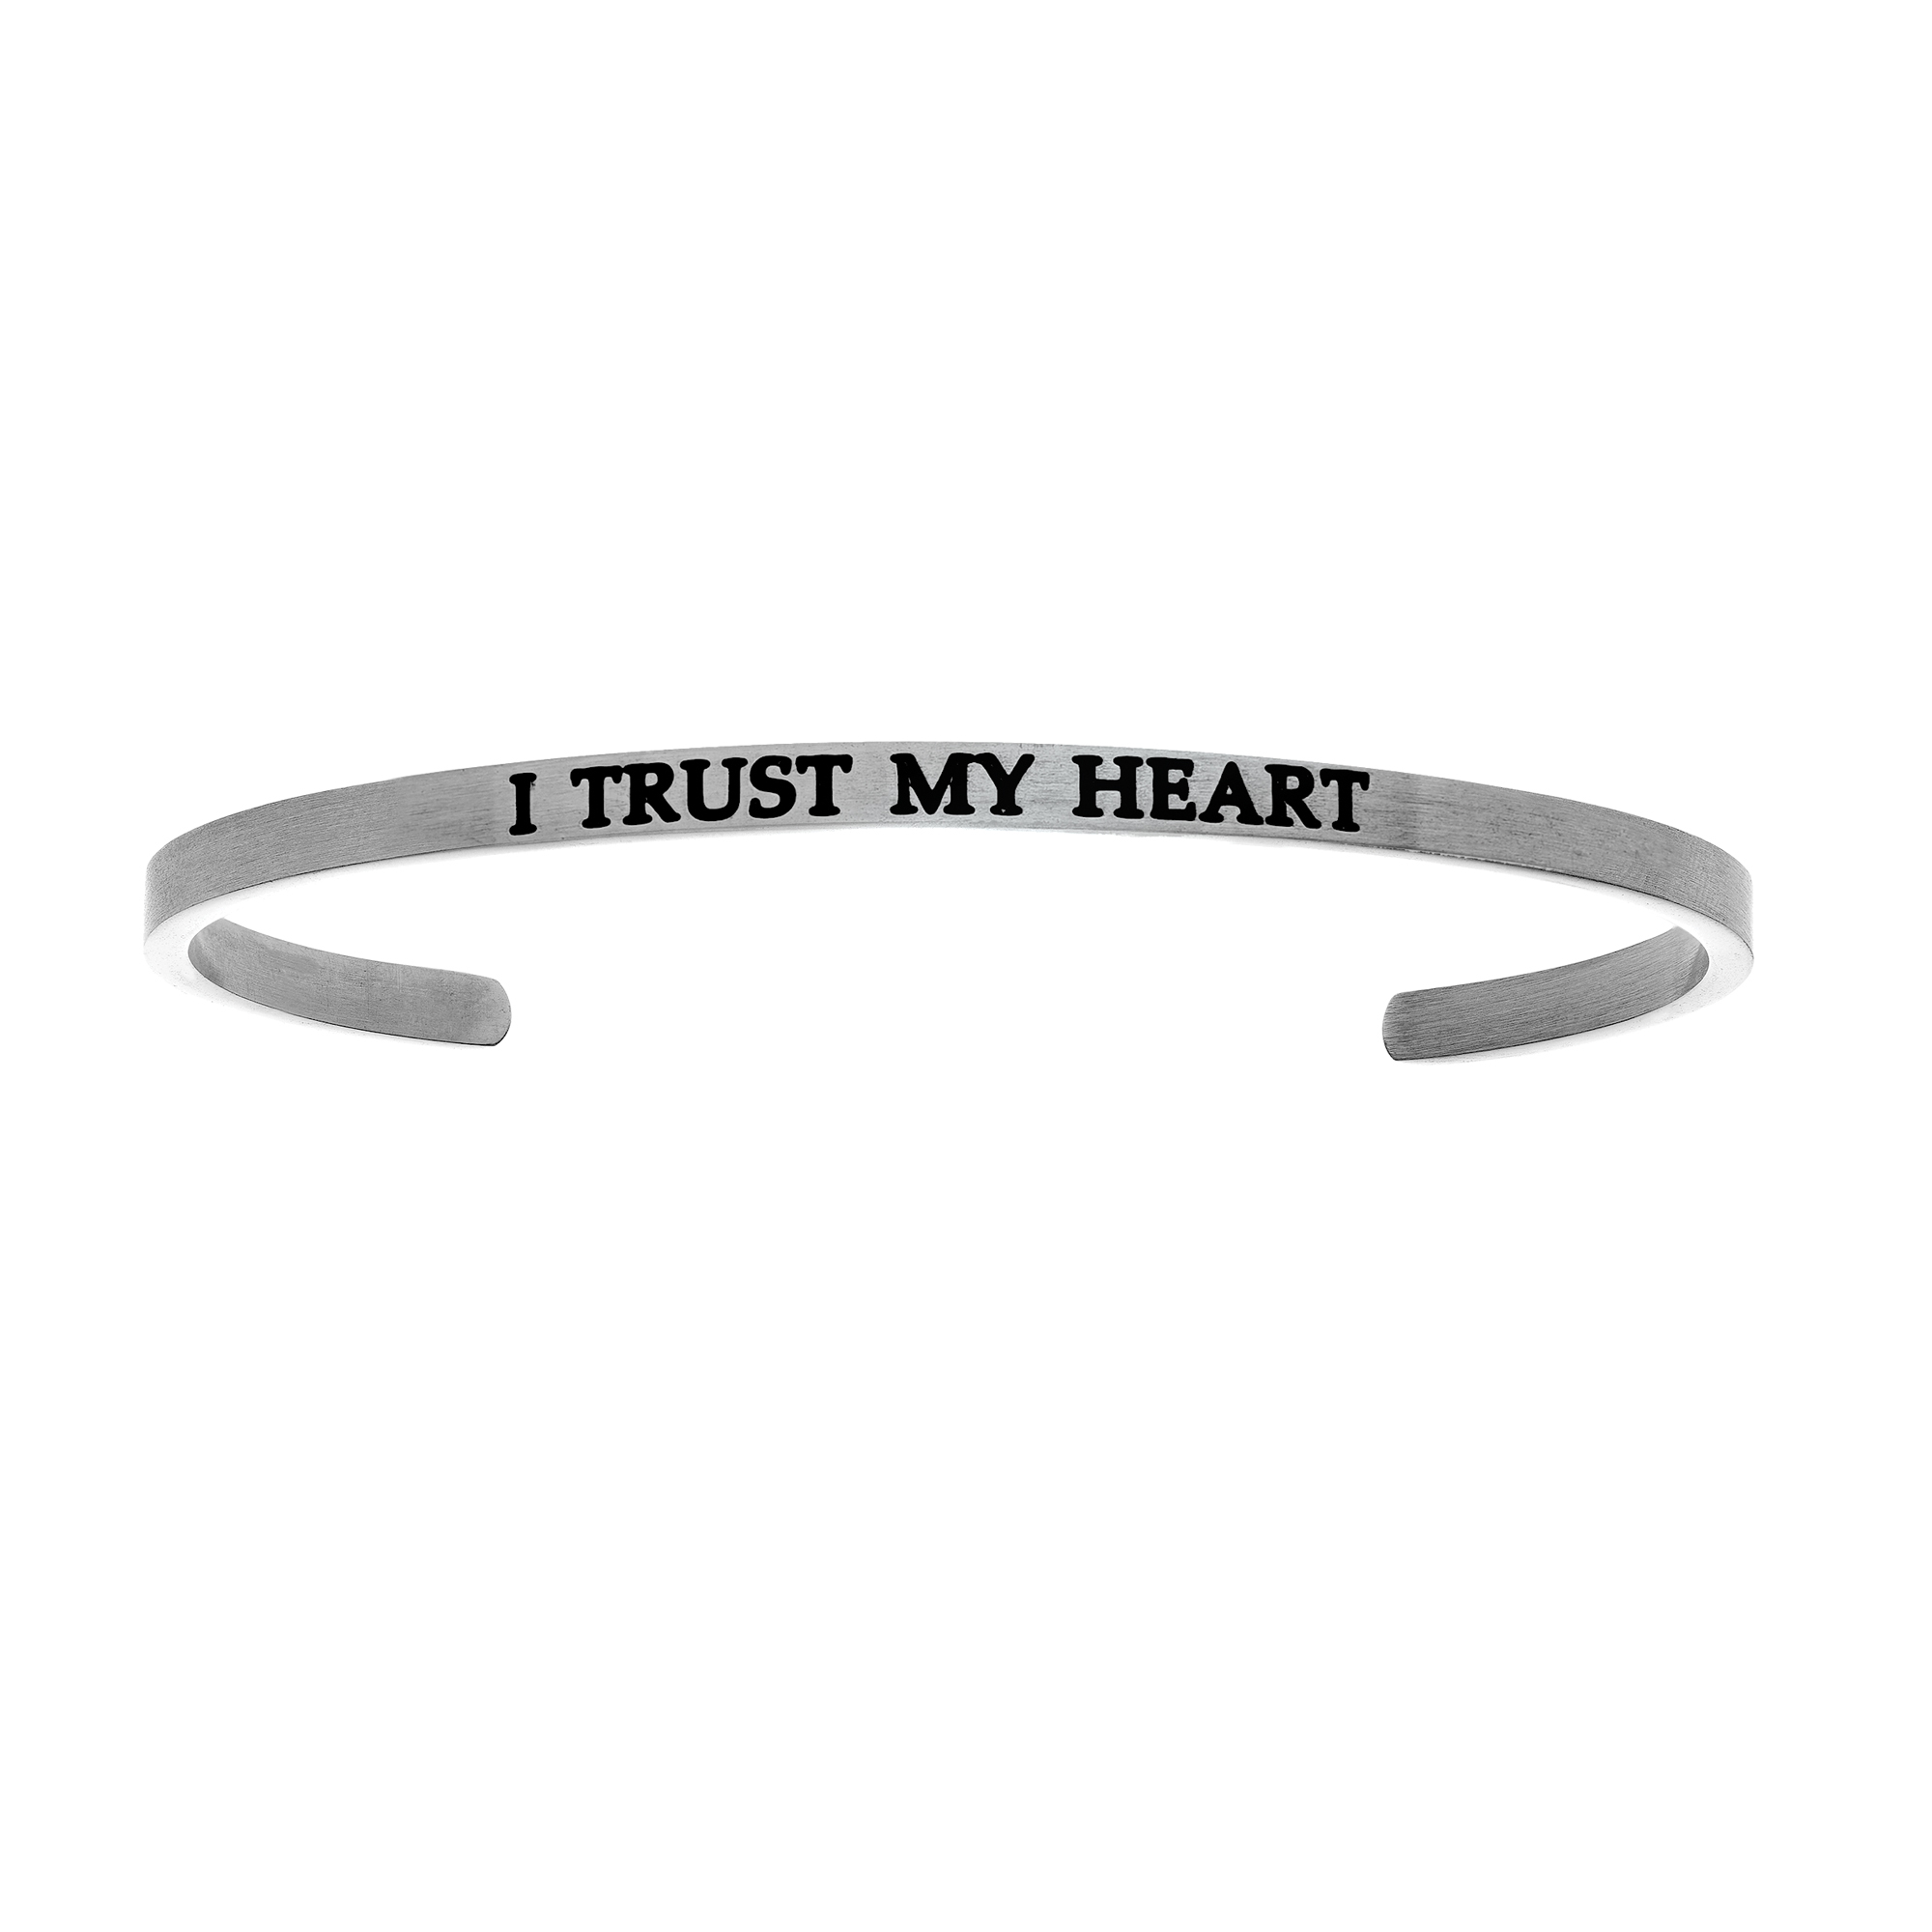 Intuitions Stainless Steel I TRUST MY HEART Diamond Accent Cuff Bangle Bracelet, 7″